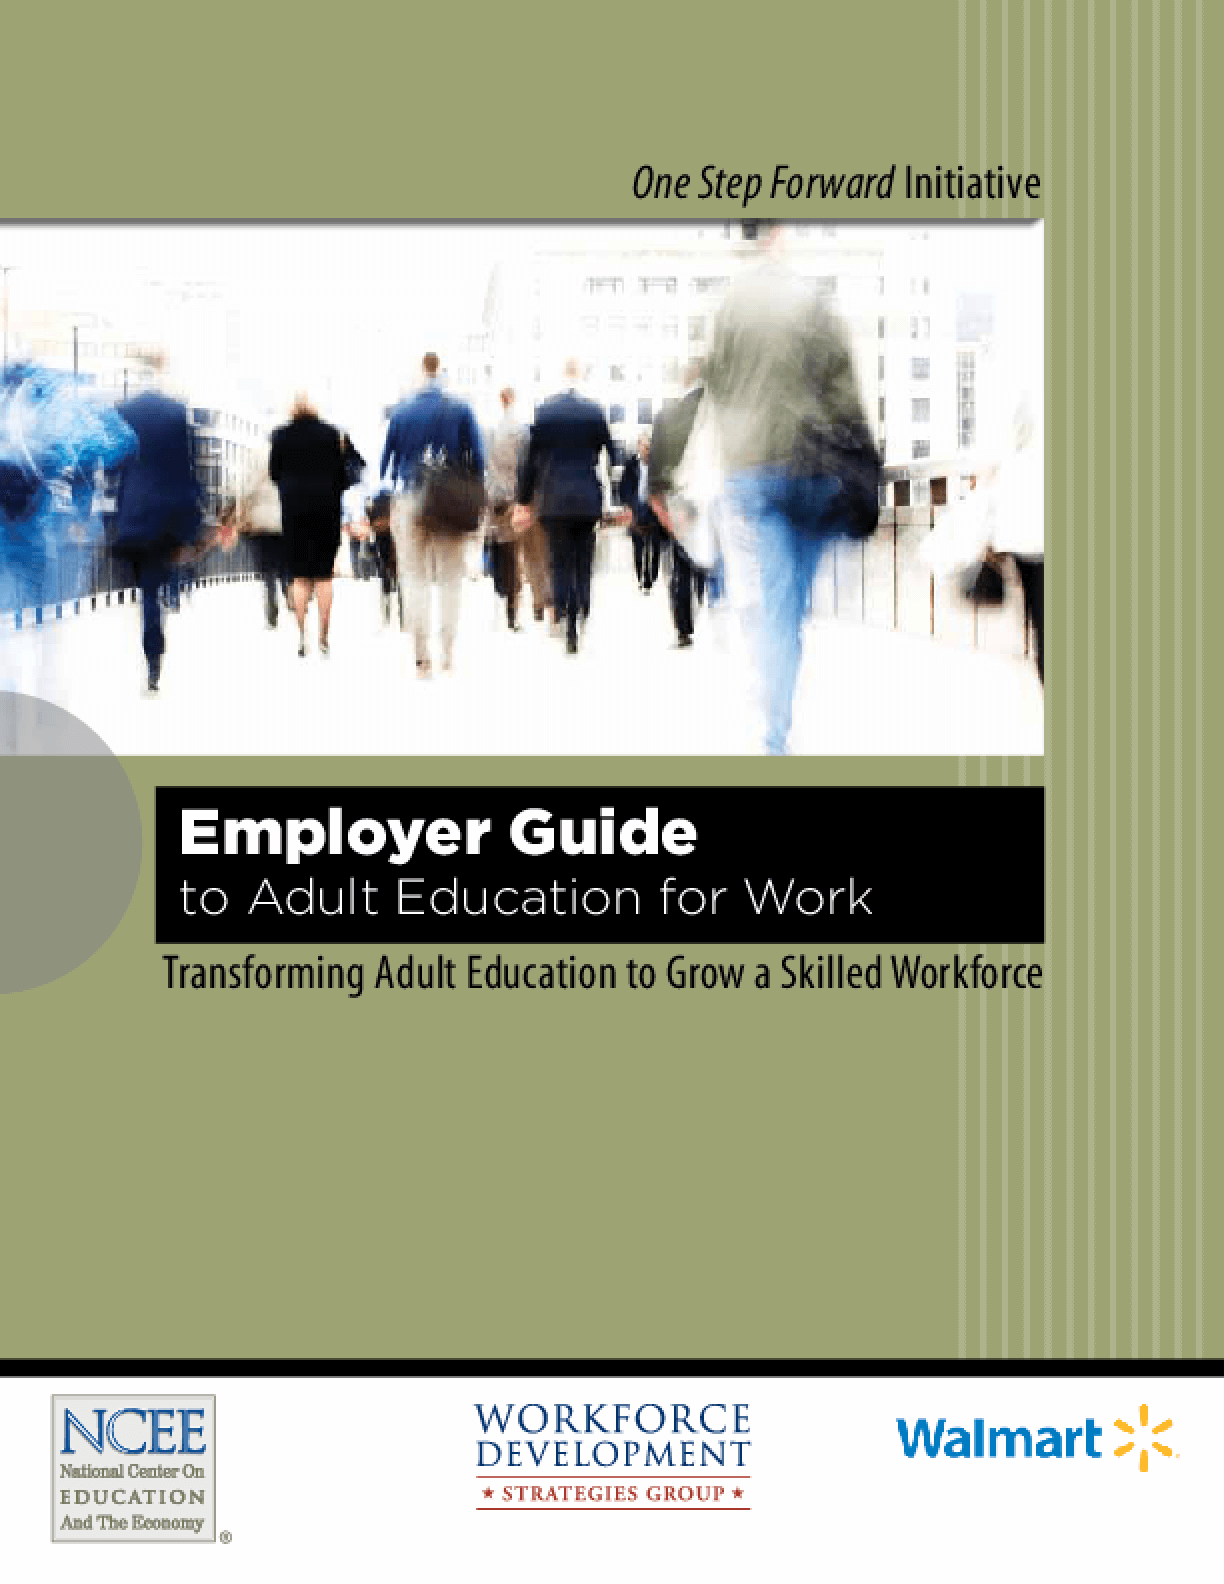 Employer Guide to Adult Education for Work: Transforming Adult Education to Grow a Skilled Workforce